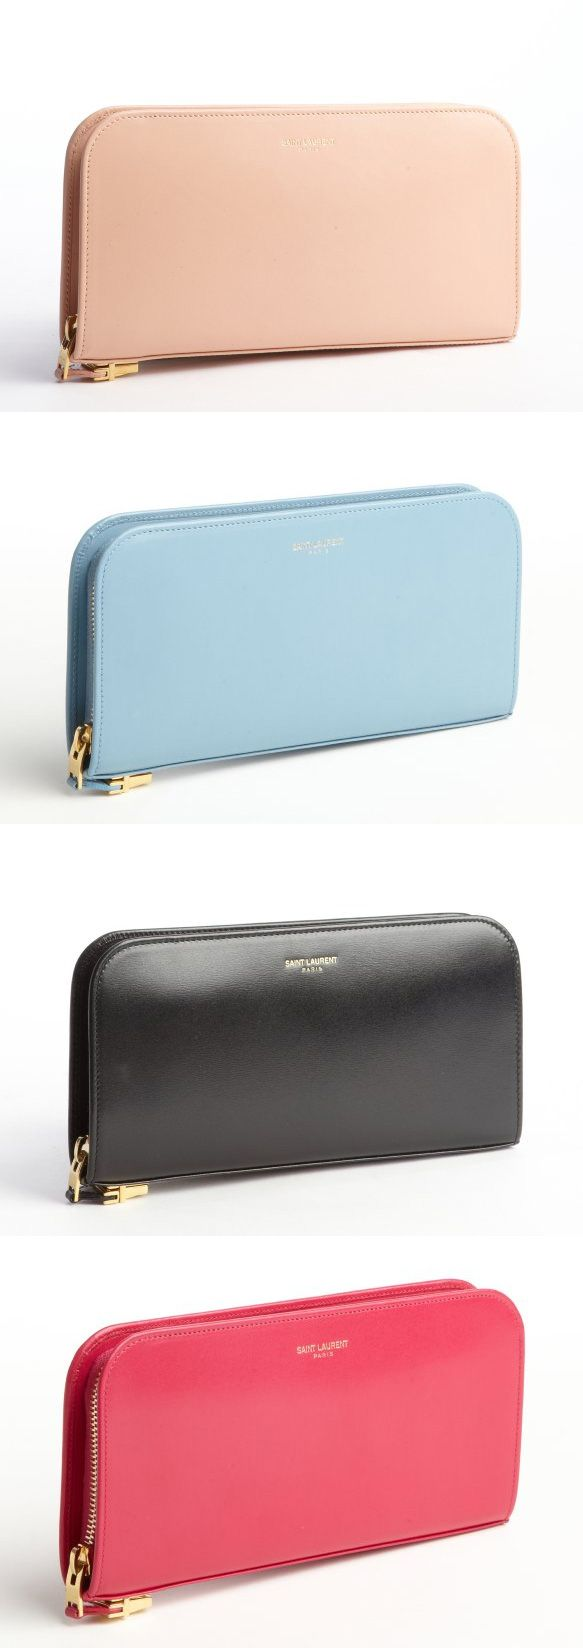 SAINT LAURENT Leather Zip Continental Wallets // love all these colors.... Love the coral pink.